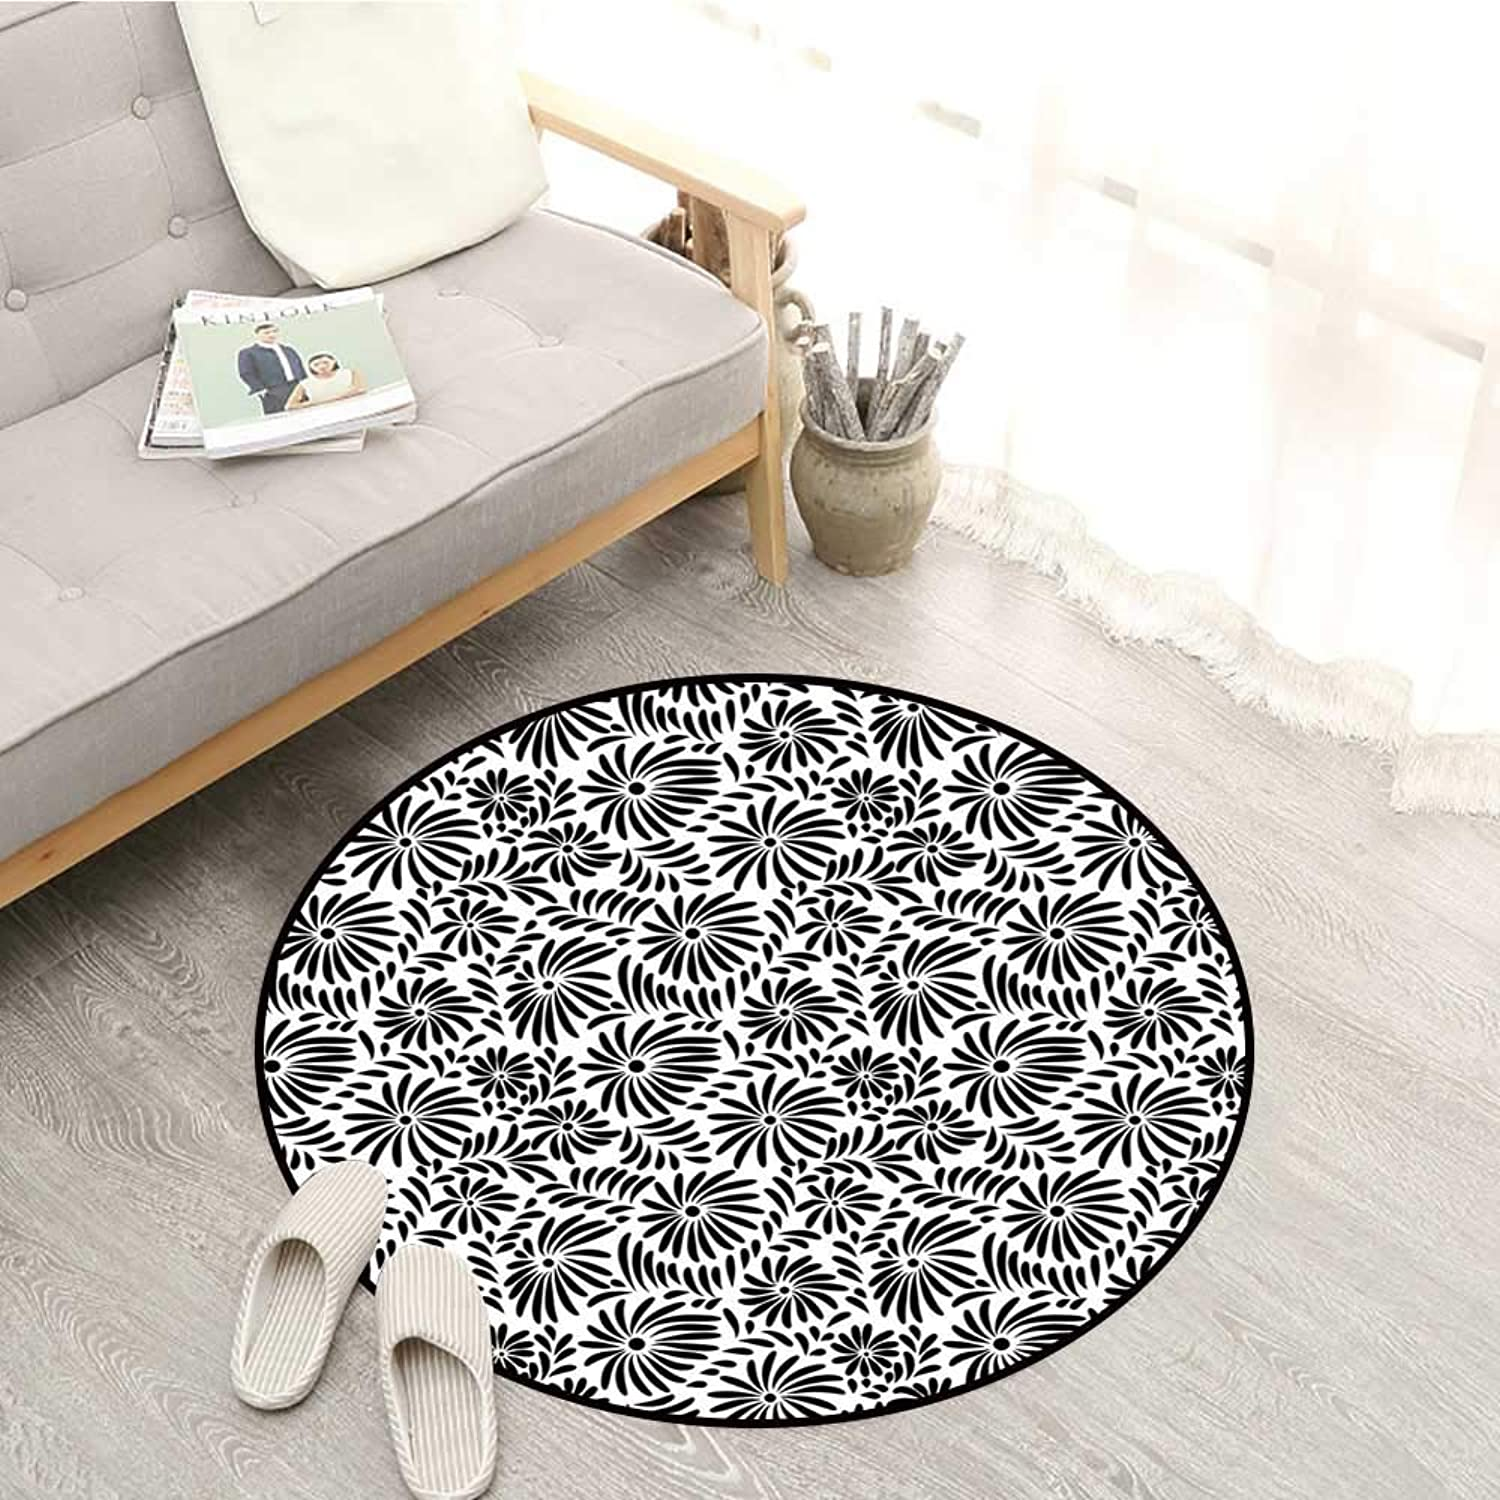 Black and White Carpets Simple Floral Motifs Tropical Island Vegetation in Monochrome Doodle Style Sofa Coffee Table Mat 3'3  Black White